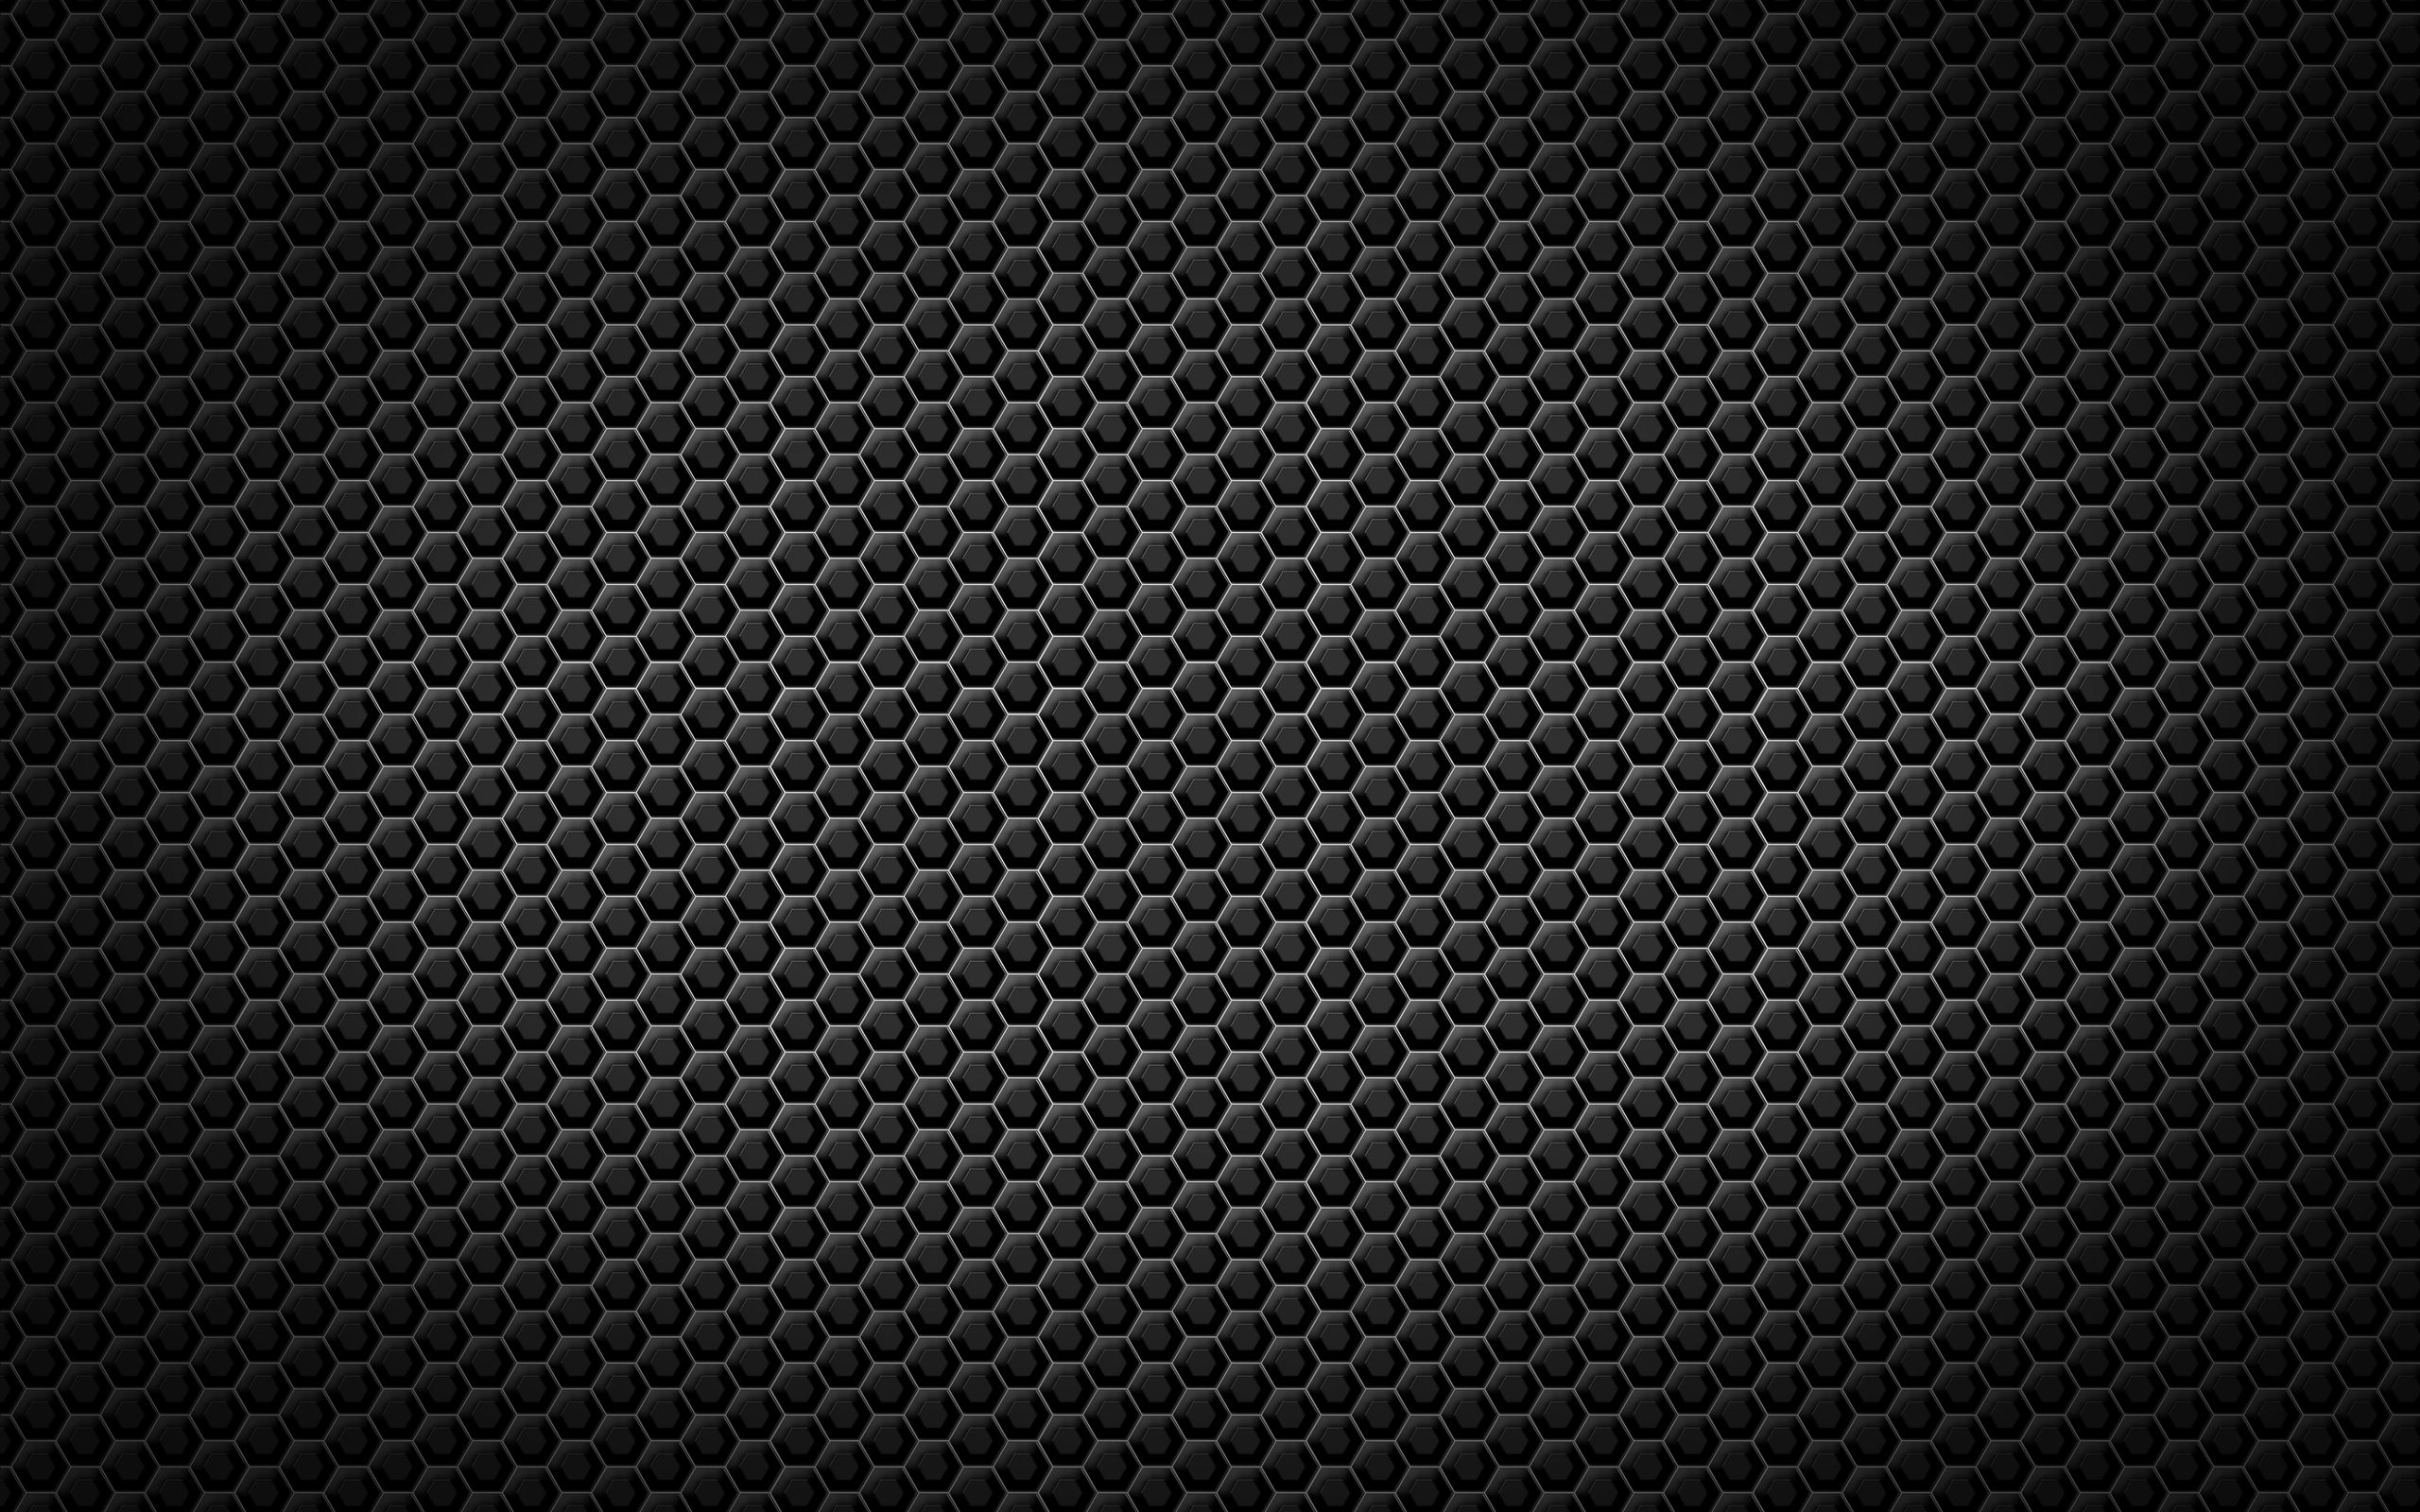 1366x768 grey honeycomb pattern - photo #13